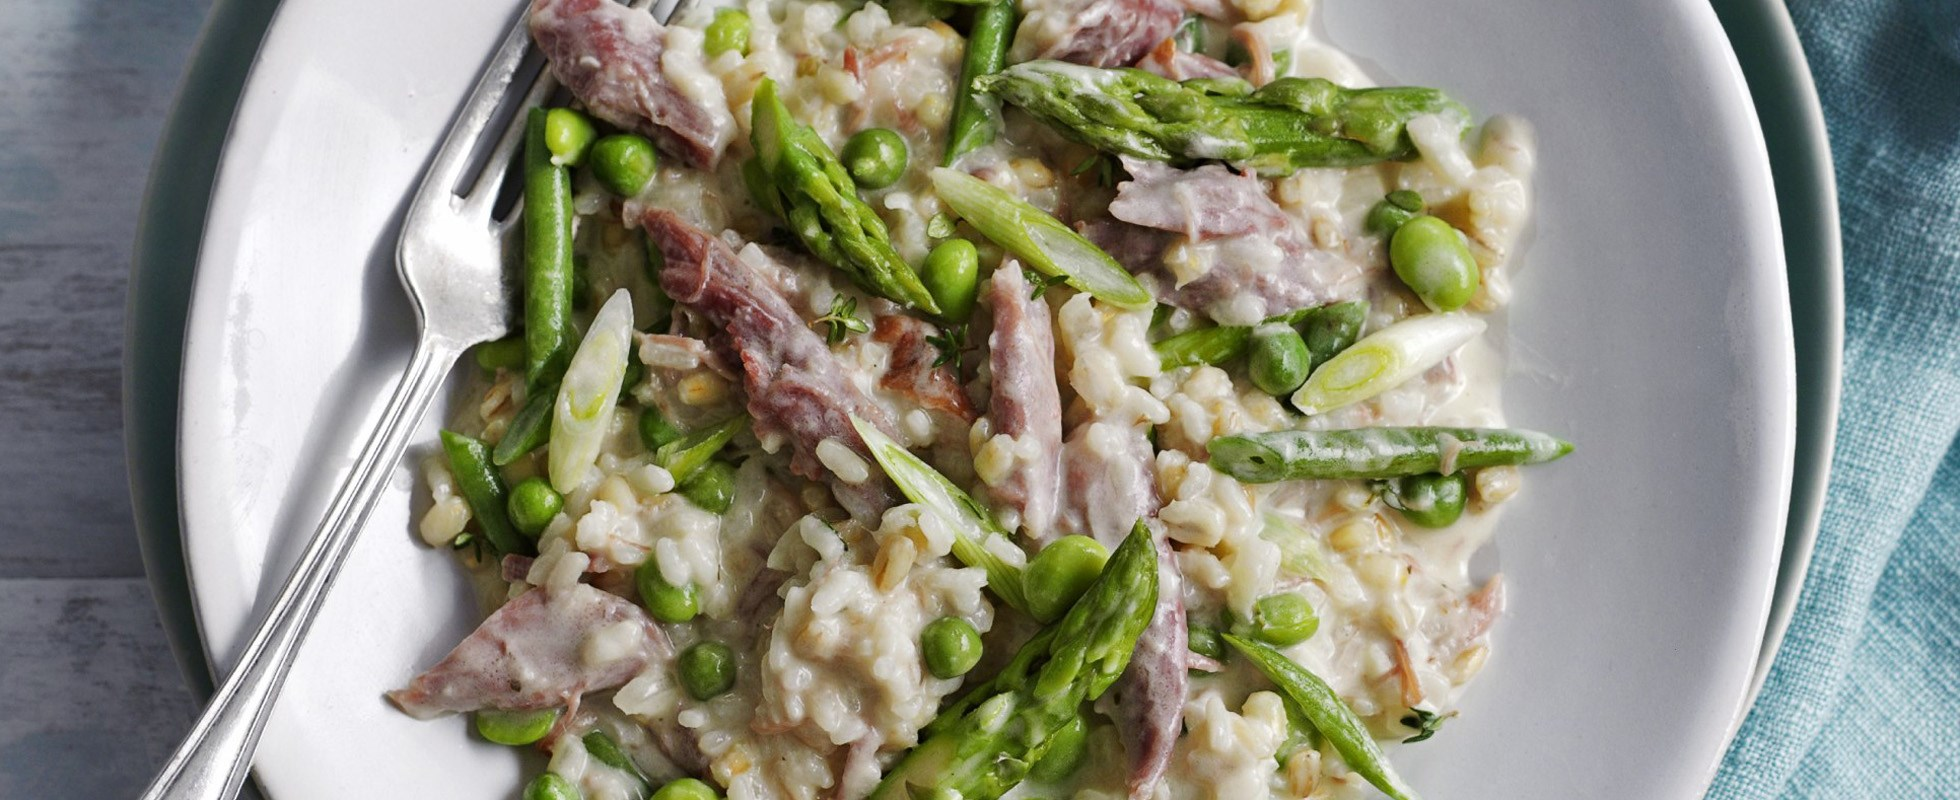 Smoked ham hock and barley risotto primavera